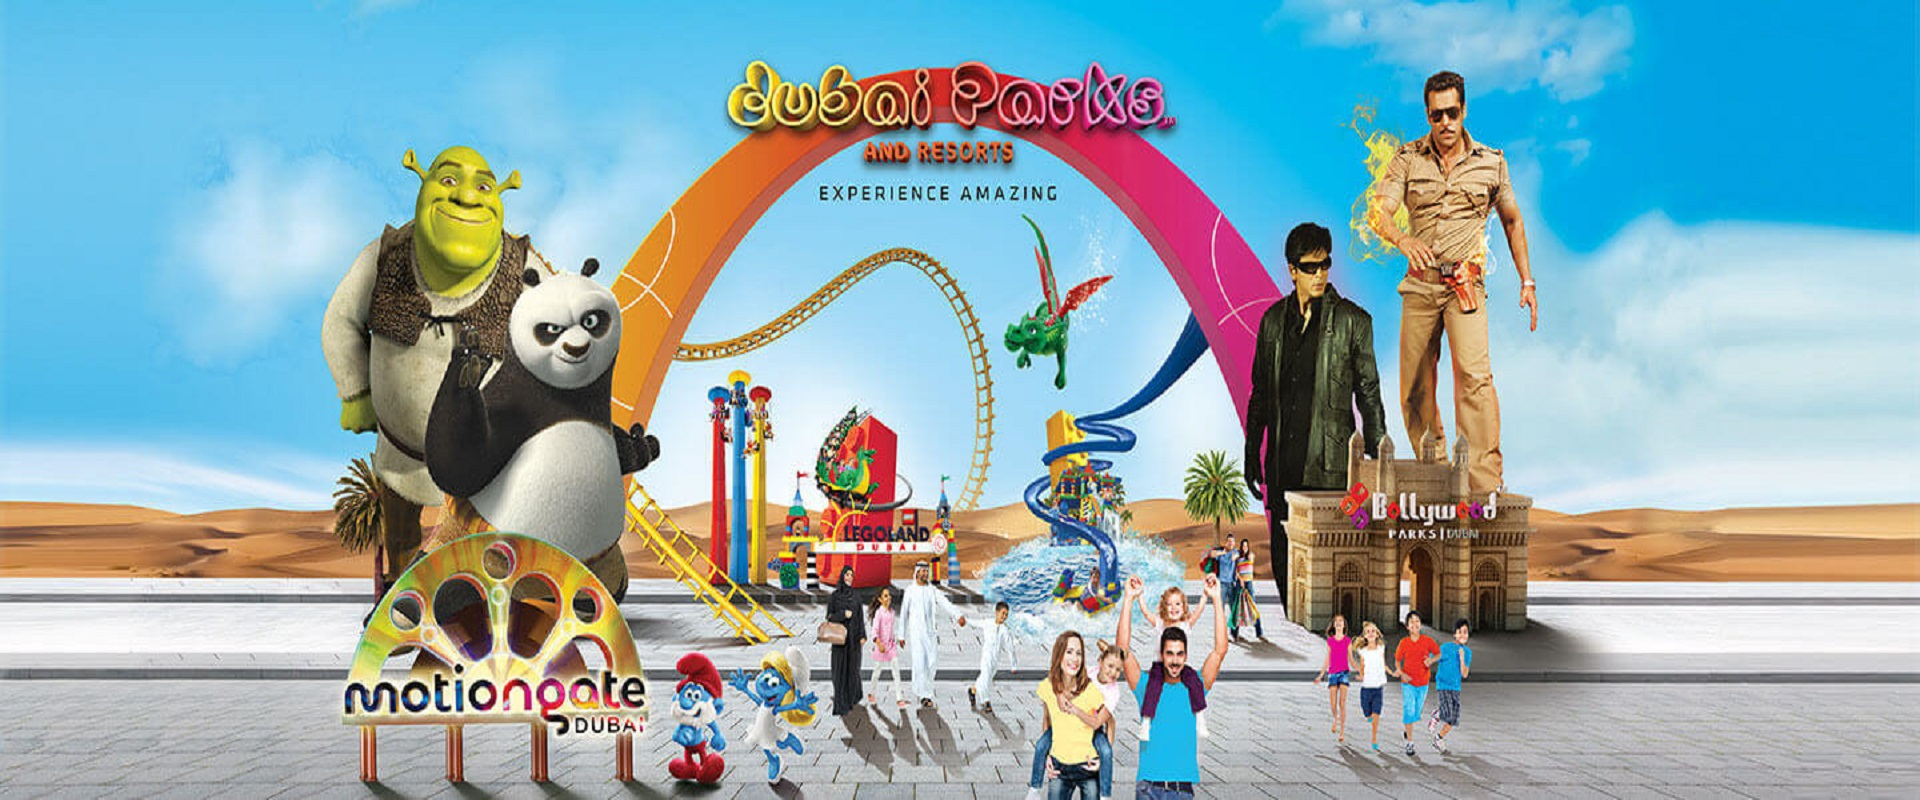 Dubai Parks 01 Day Any 01 Park + DAUZ